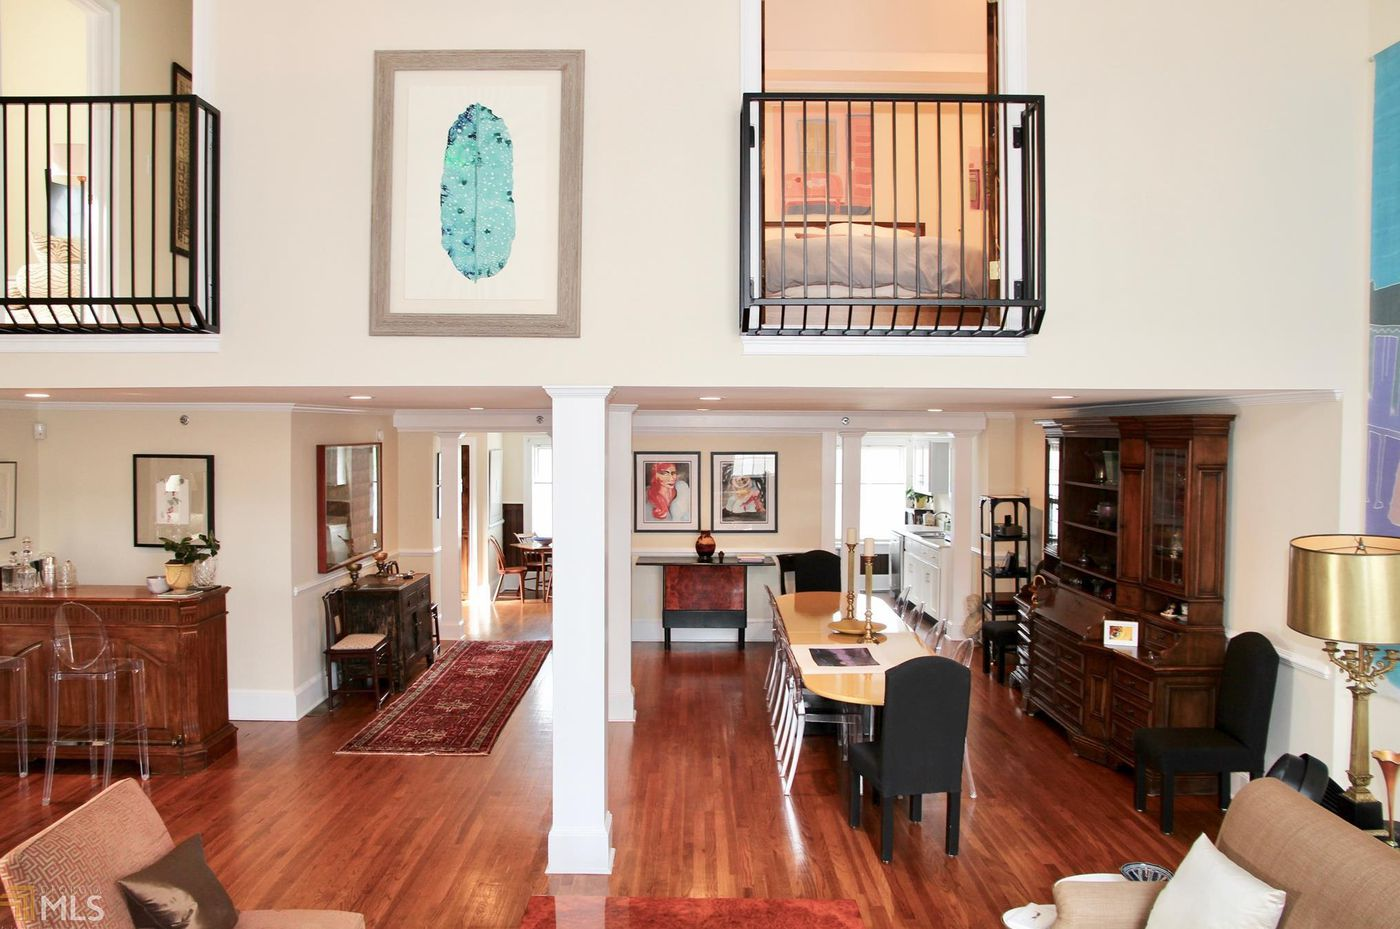 Athens condo in converted church sanctuary makes statement